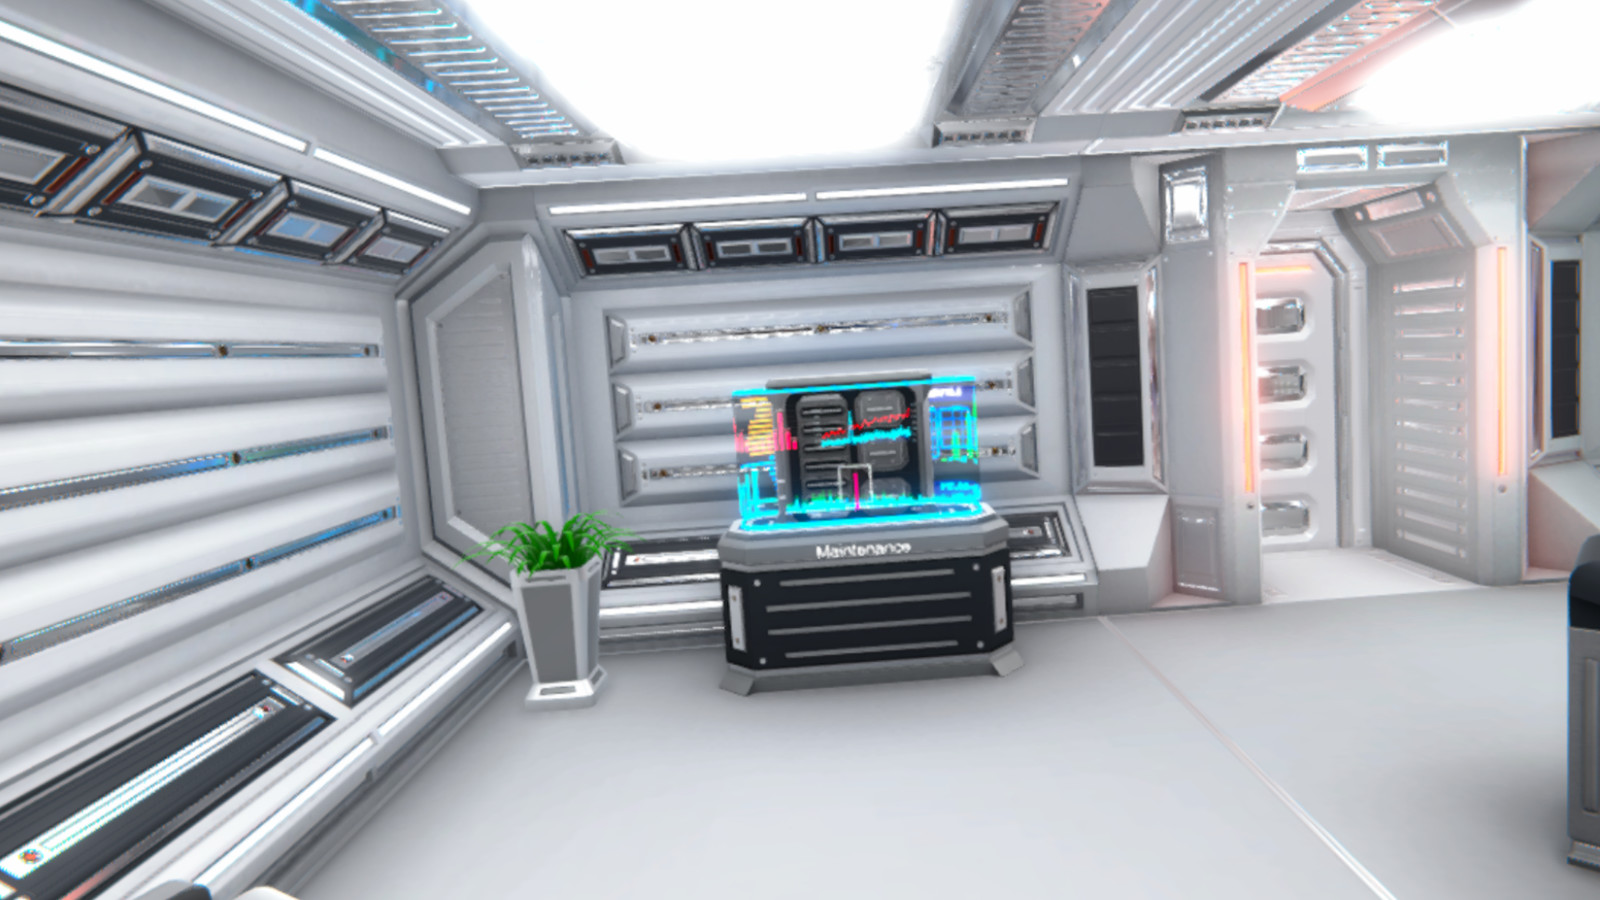 Space Panic: Room Escape (VR) screenshot